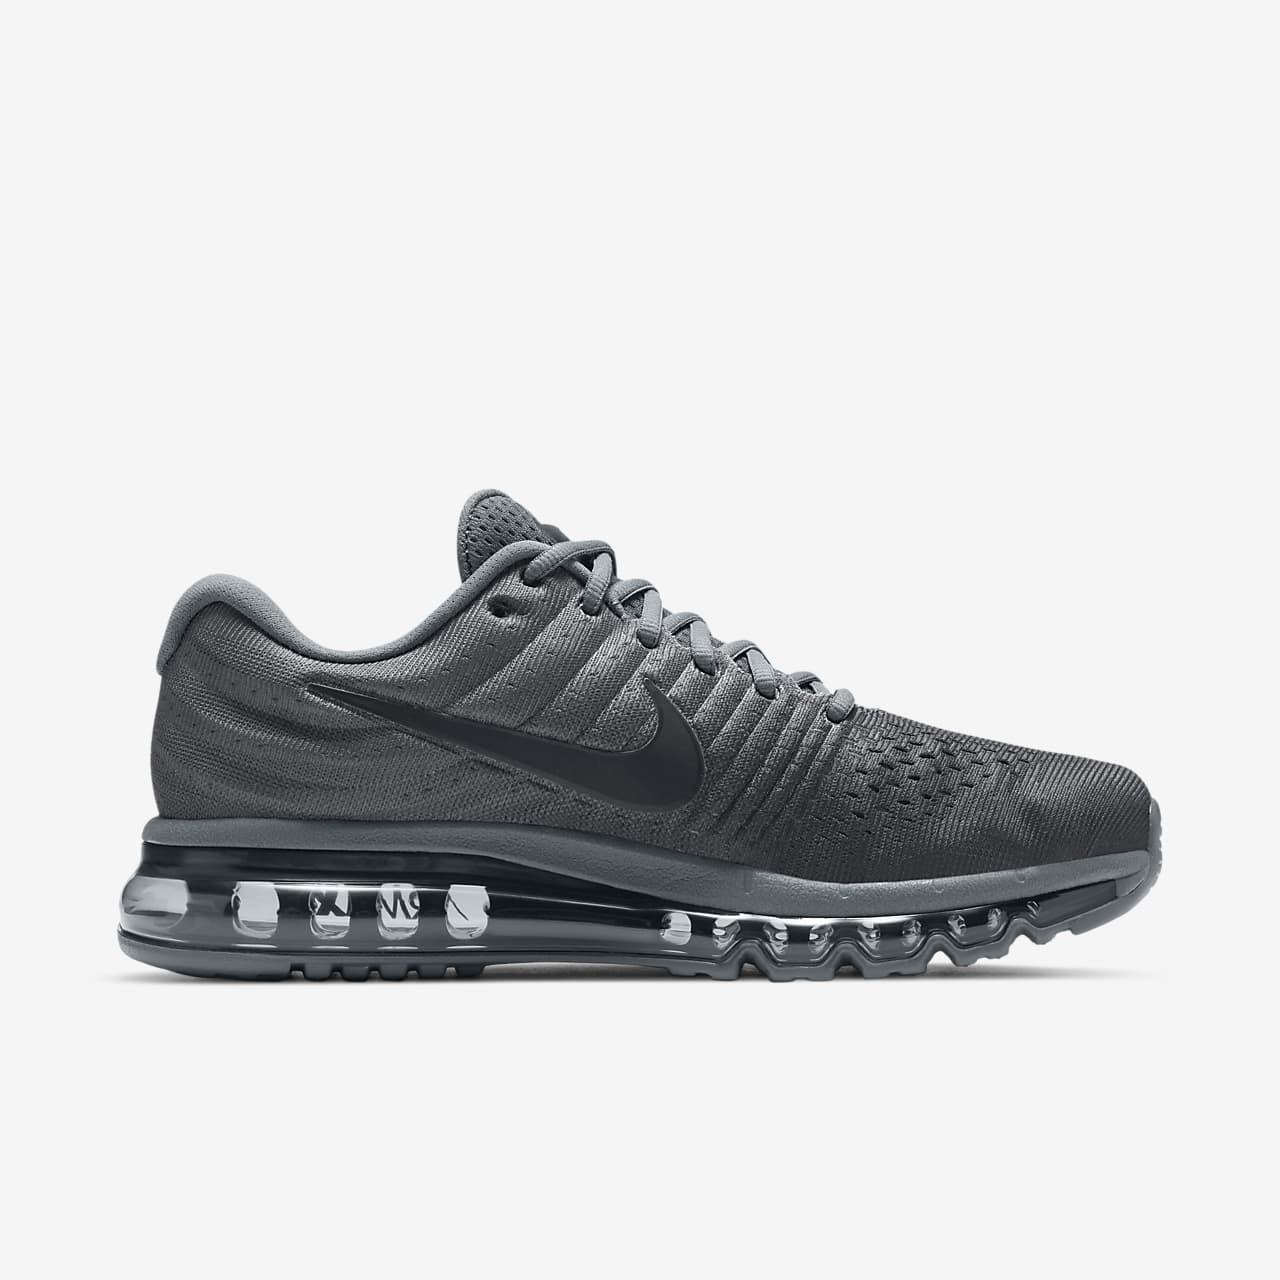 brand new e2f7d 5ea33 ... Nike Air Max 2017 Men s Shoe